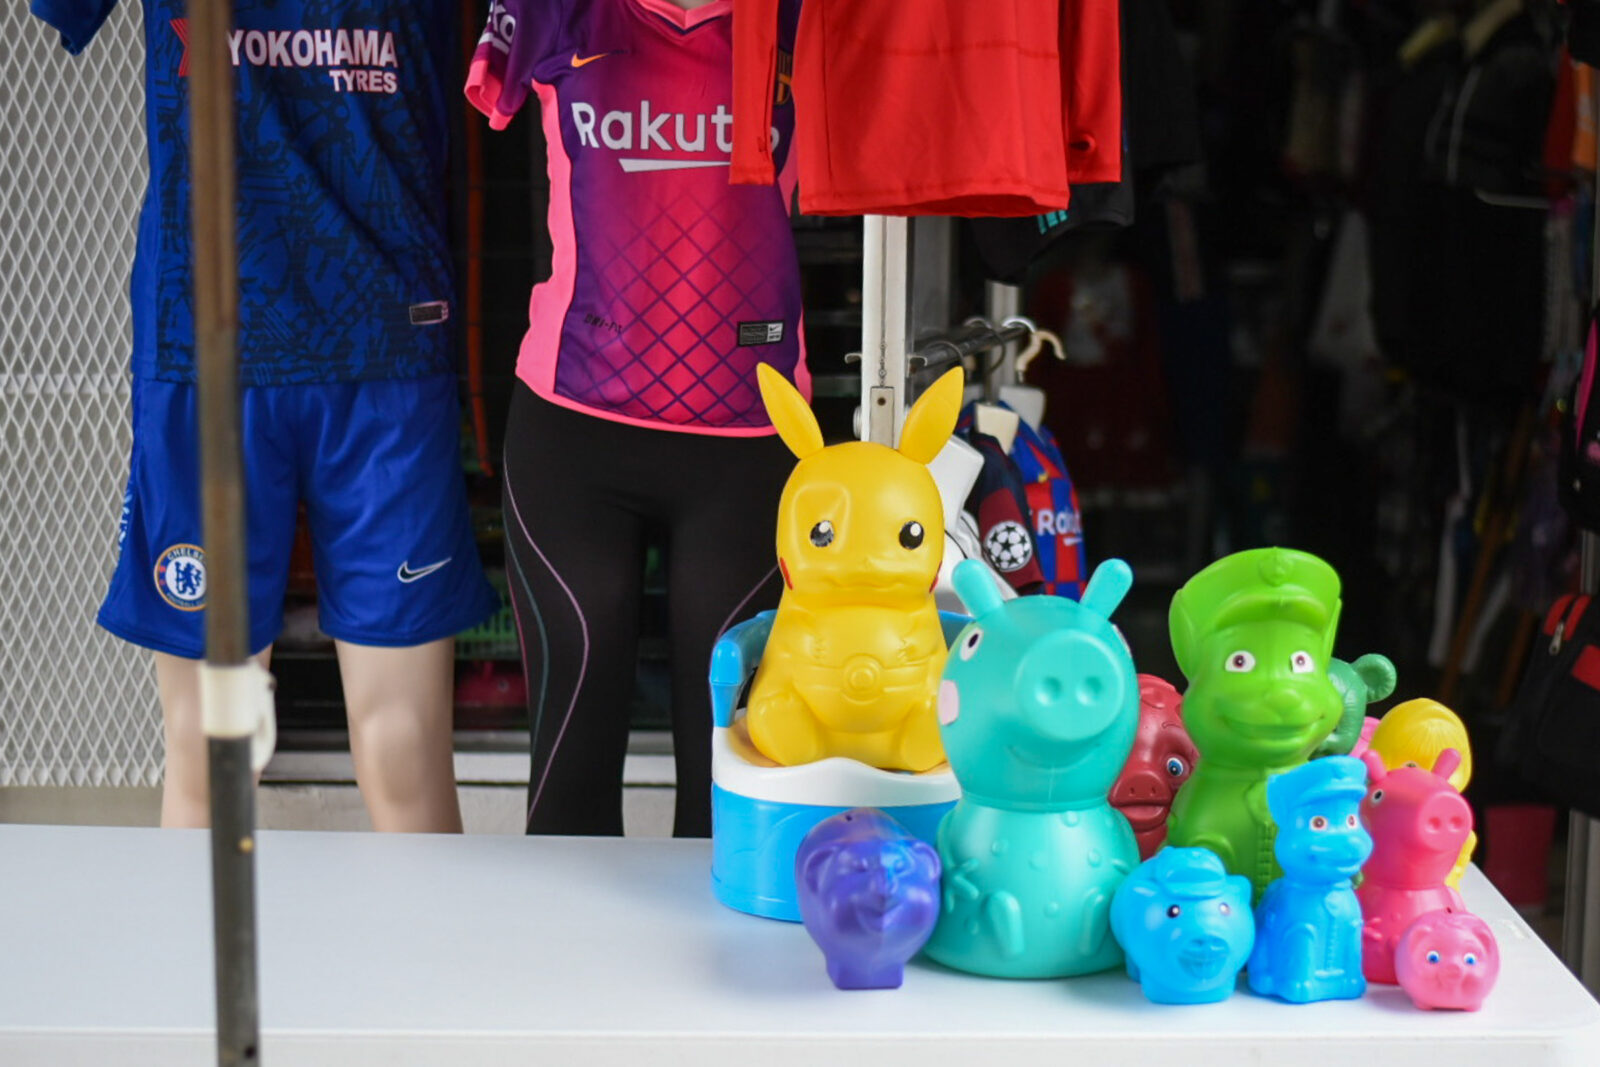 plastic pikachu and a variety of cartoon figures displayed on a table at a street market